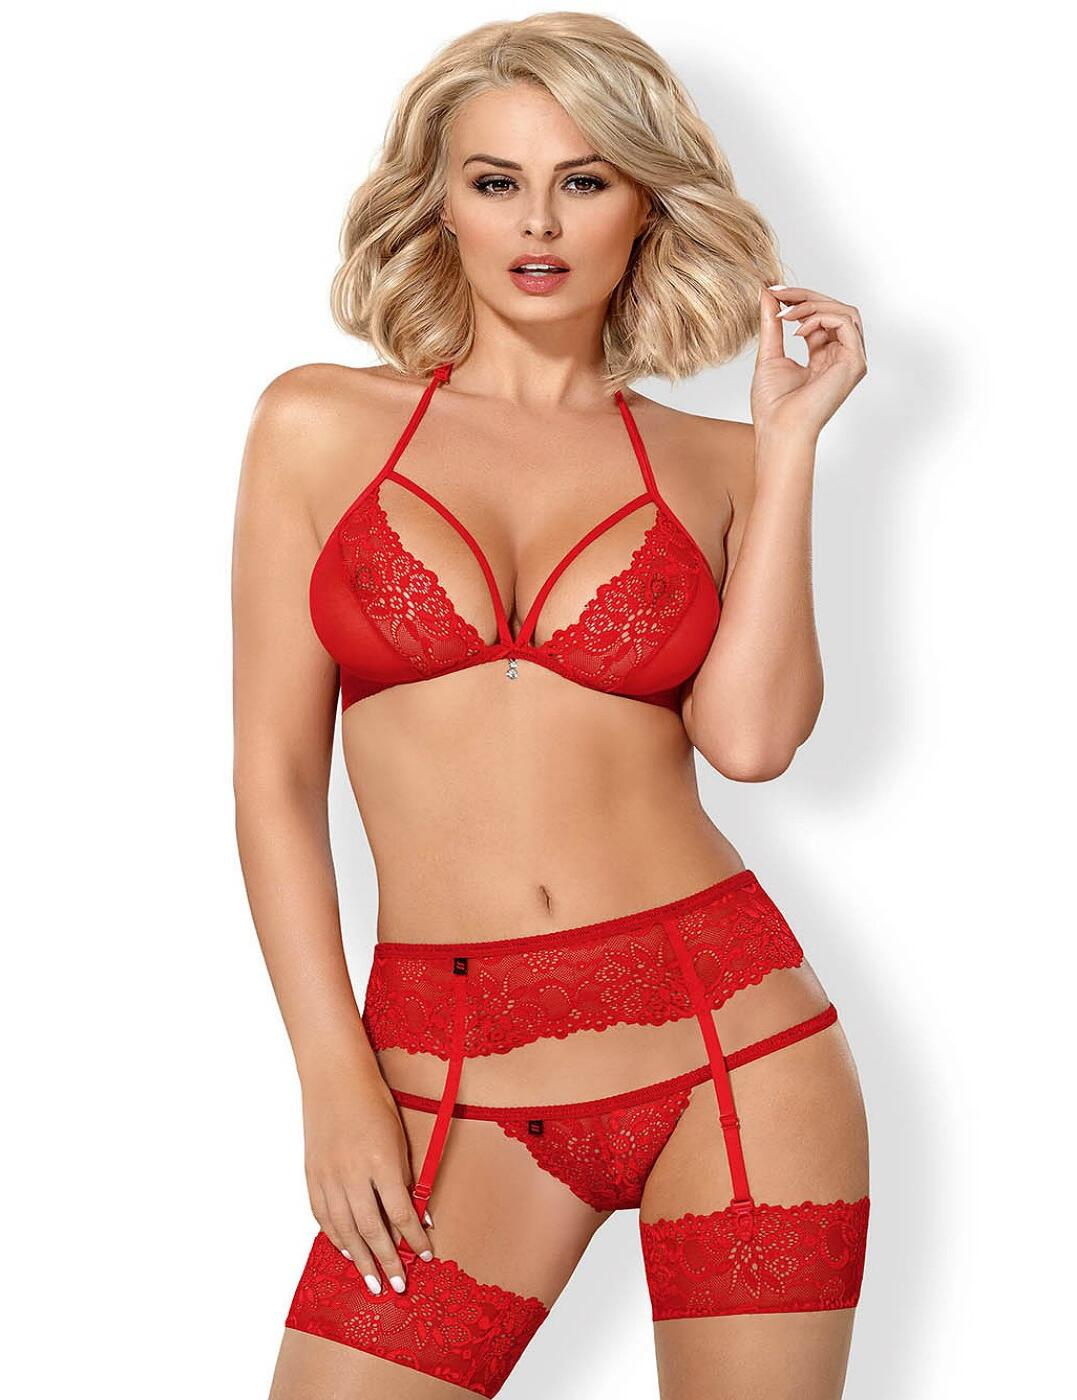 838-SEG-3 Obsessive Lingerie Bra Suspender and Thong Set  - 838-SEG-3 Red